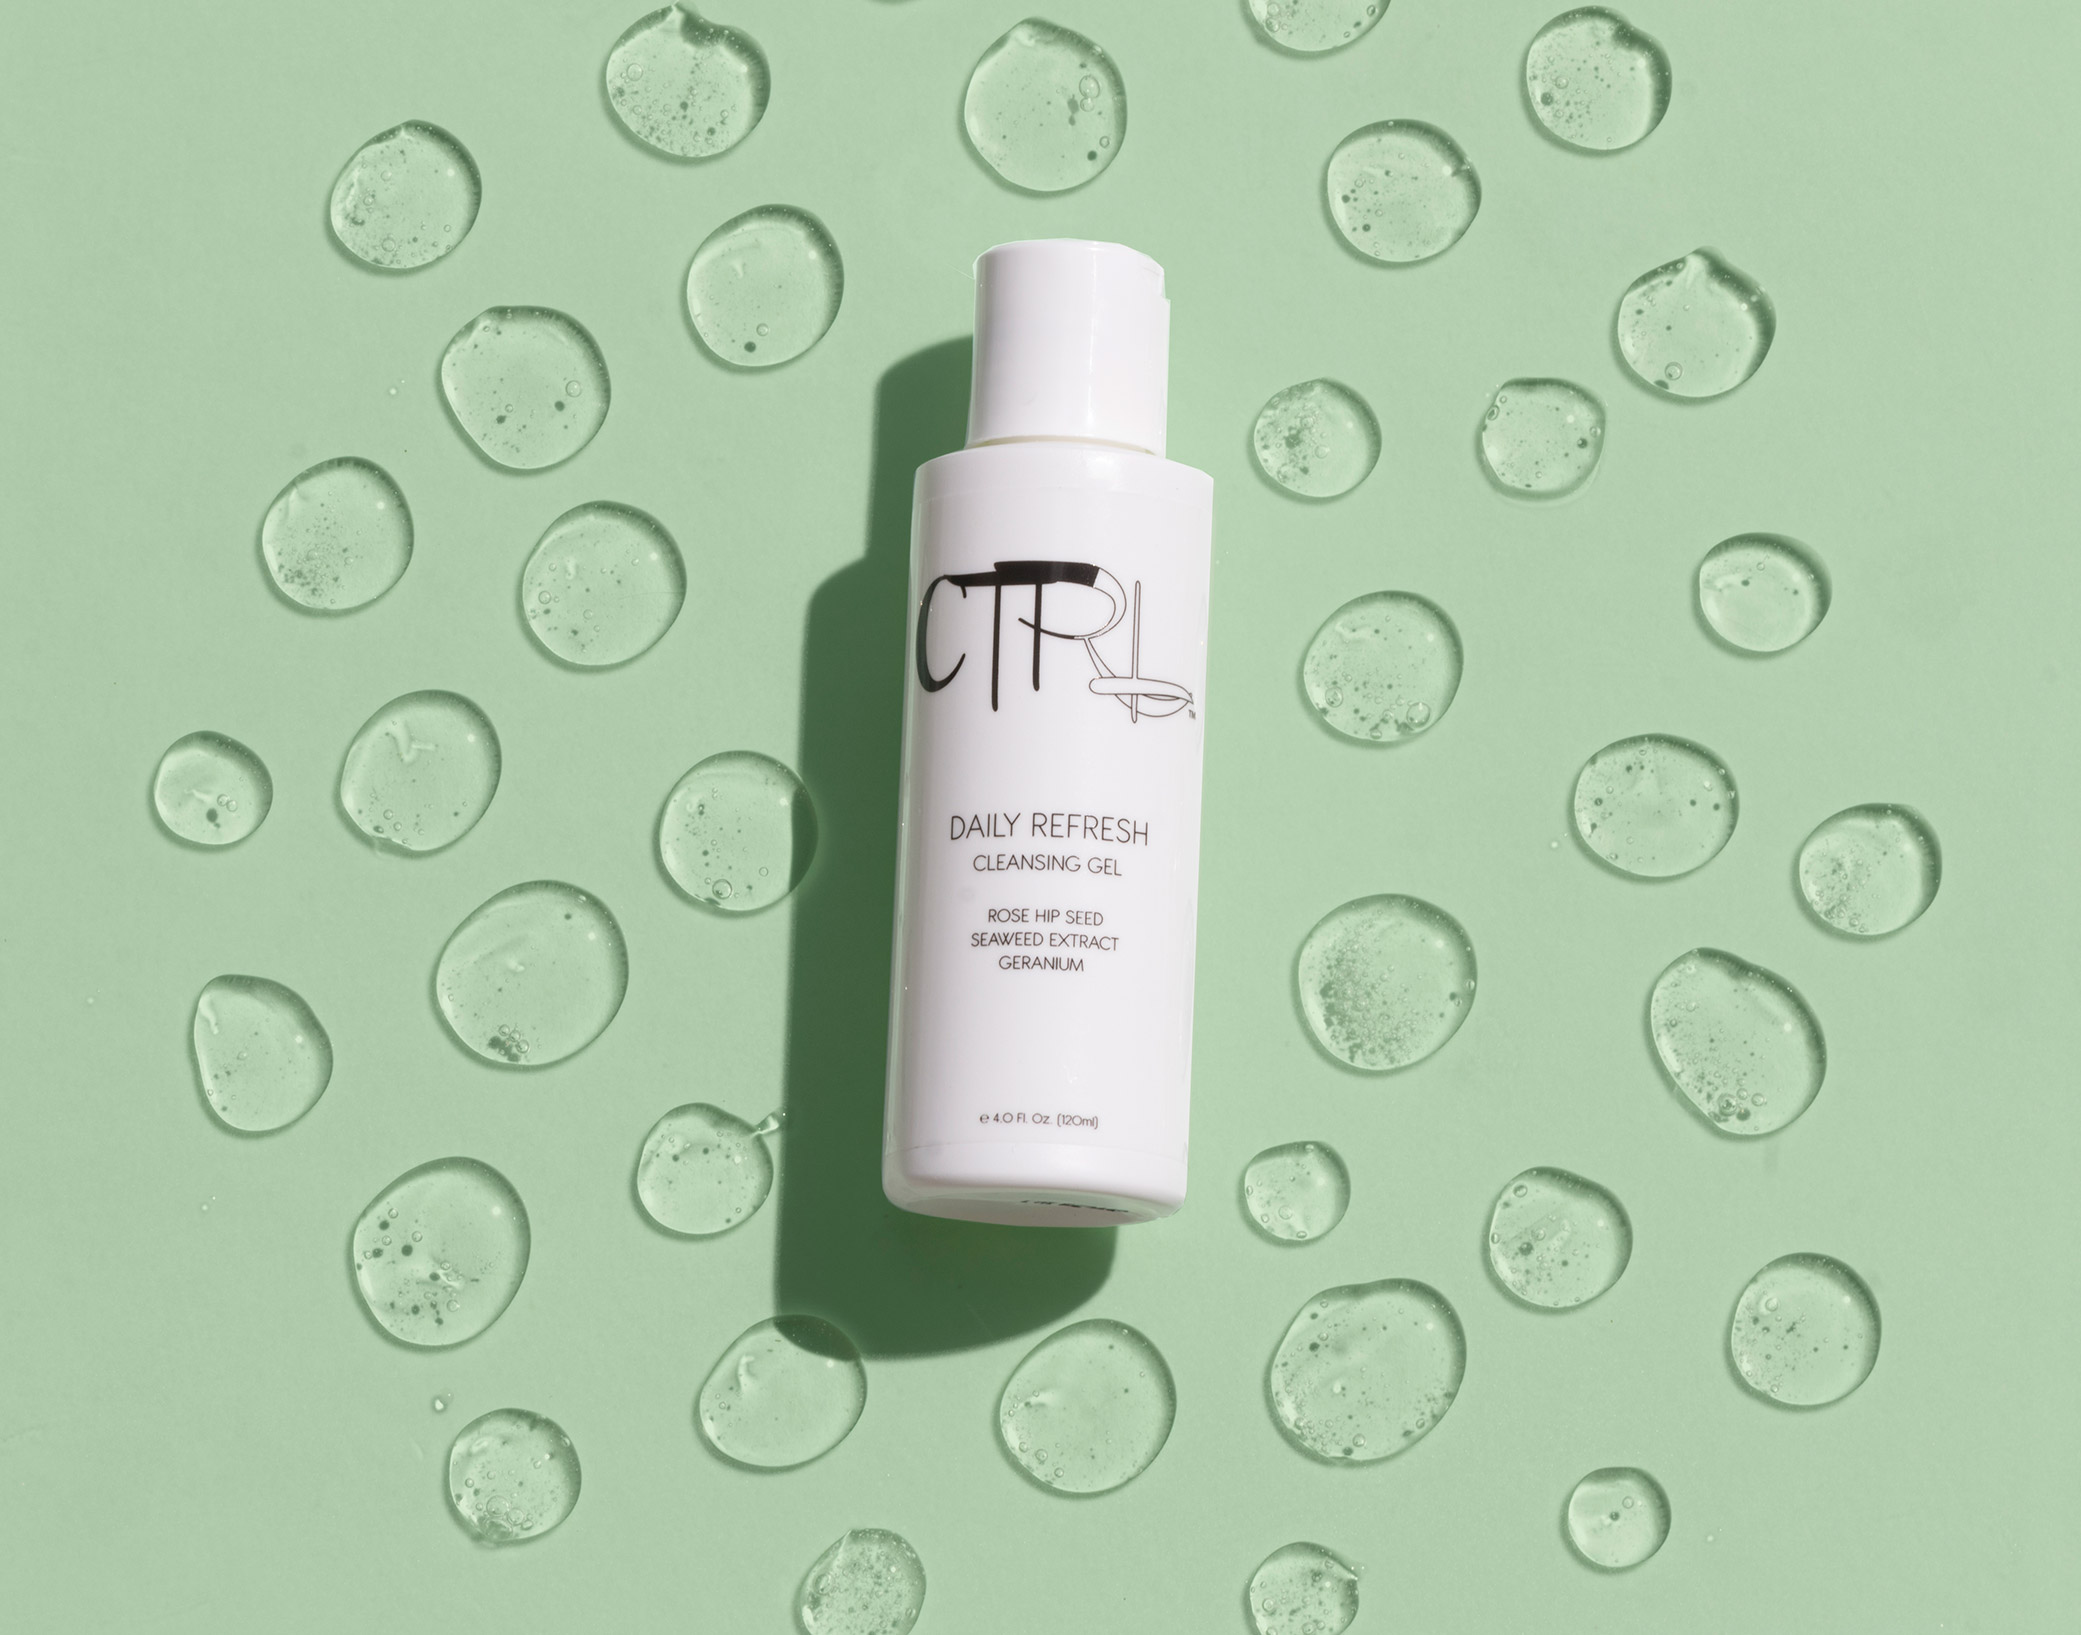 CTRL Cosmetics packaging design showcasing skincare product against light green backdrop with drops of liquid around the bottle.